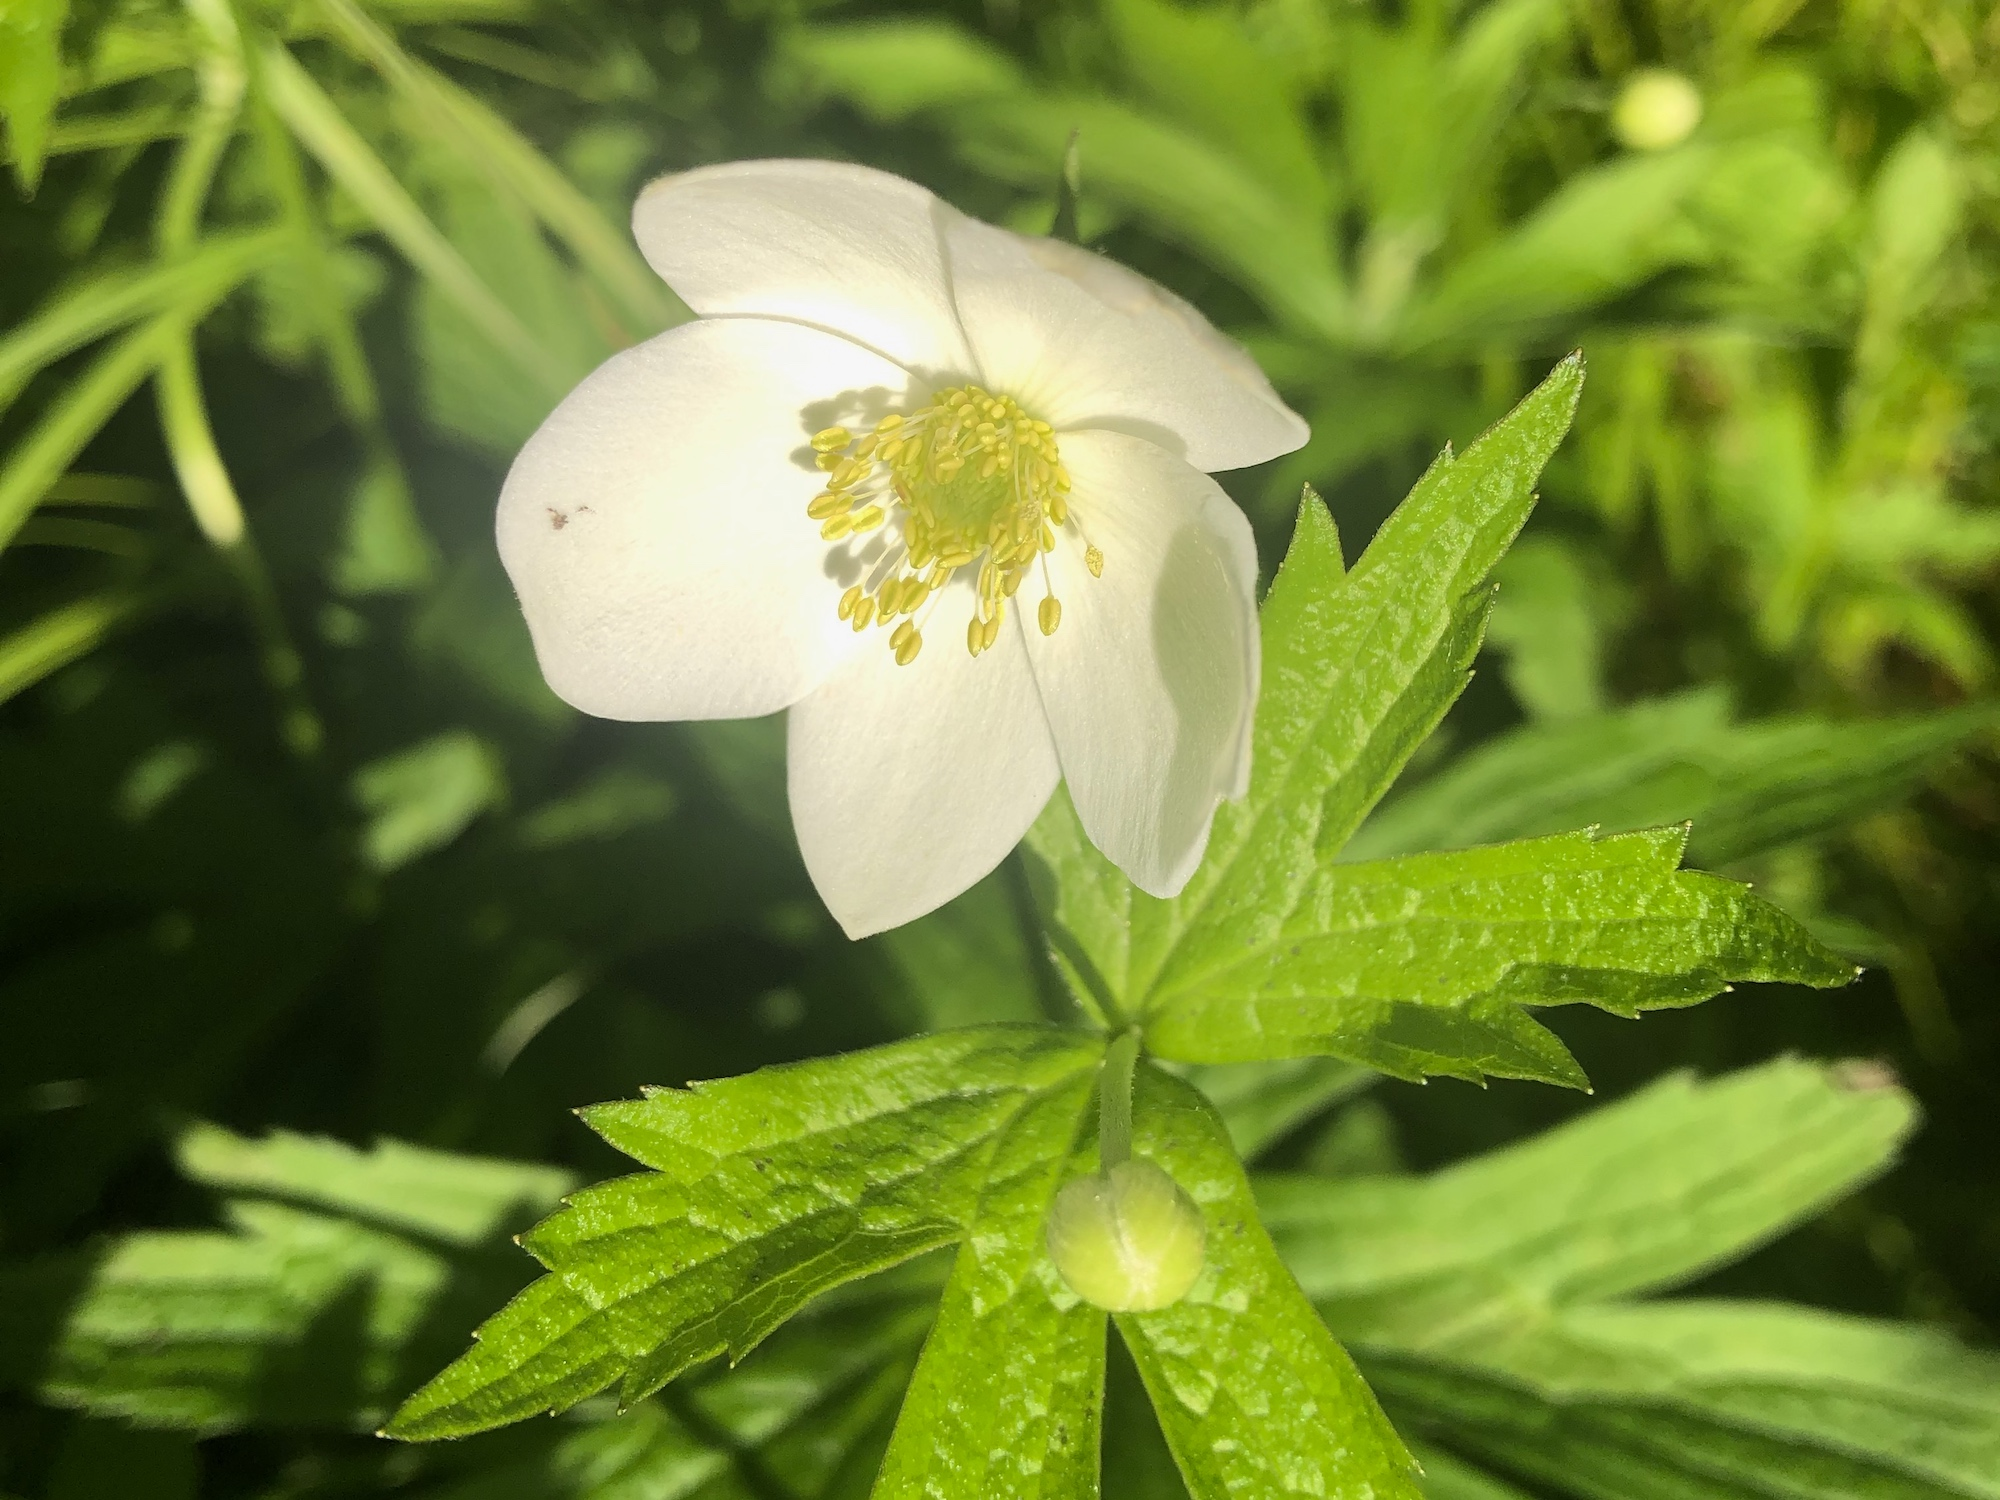 Canada anemone in Thoreau Rain Garden in Madison, Wisconsin on May 29, 2020.